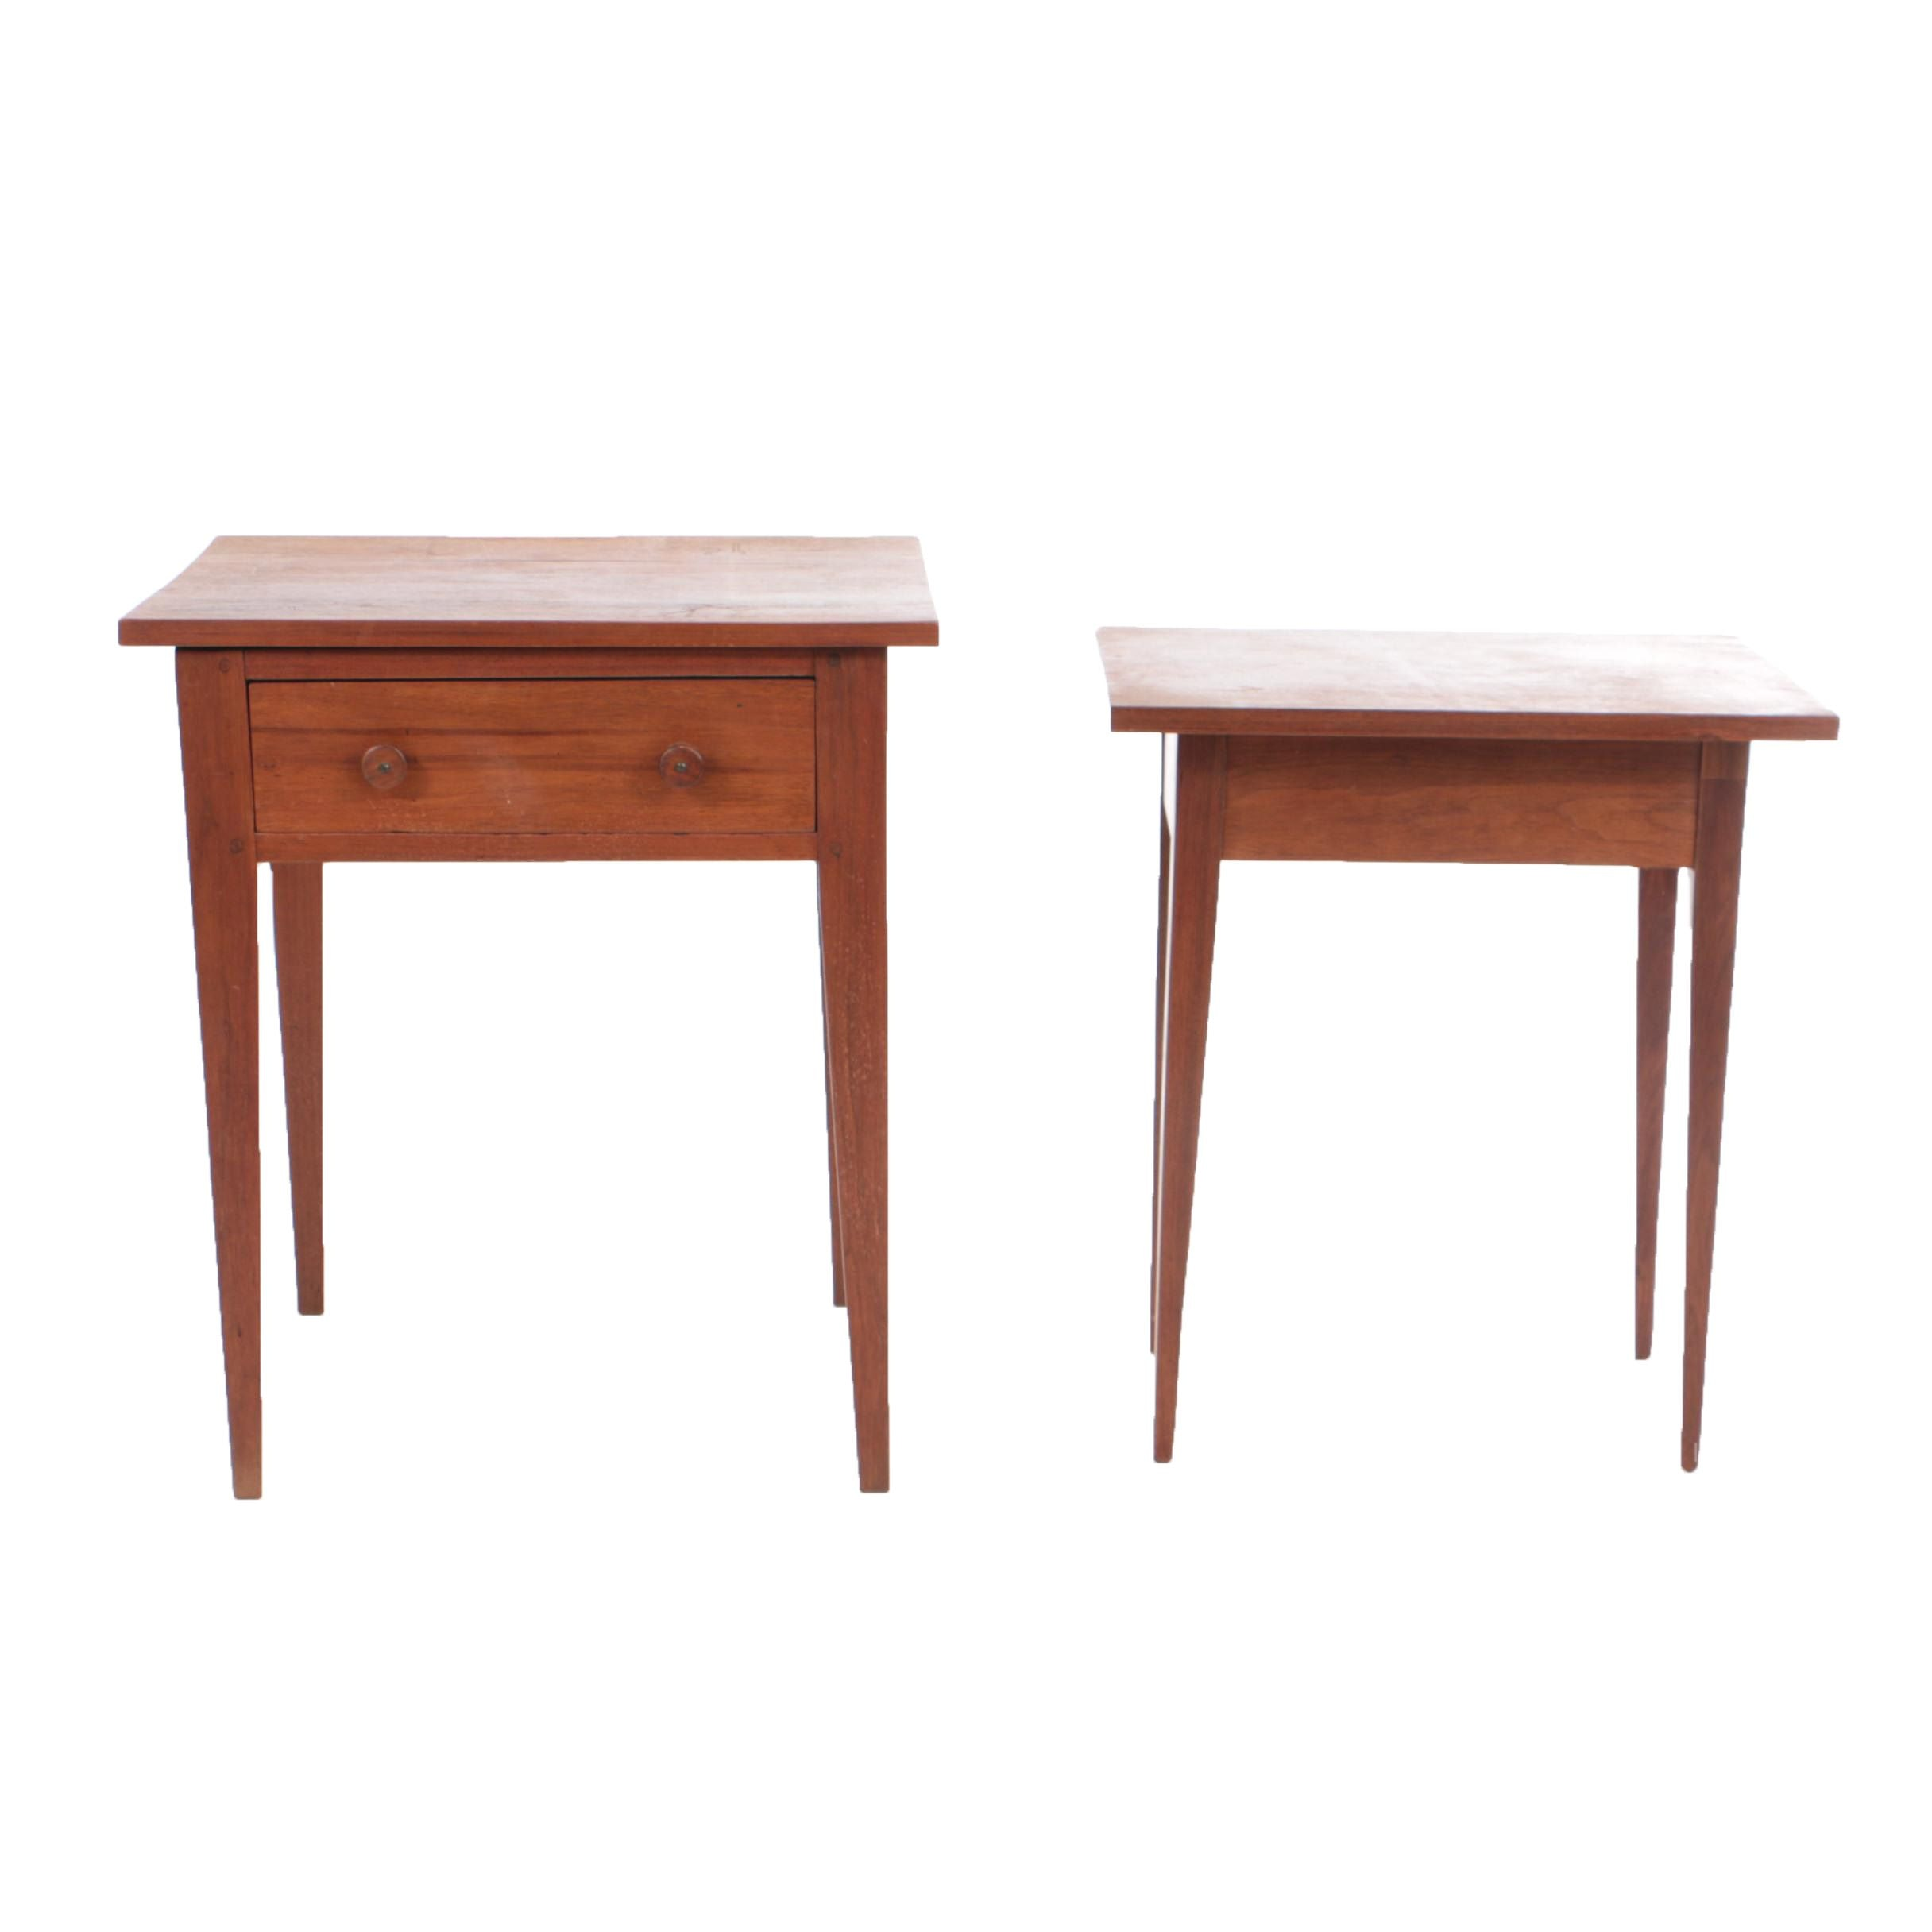 Antique Country Hepplewhite Walnut Side Table with Vintage Bench-Made Example